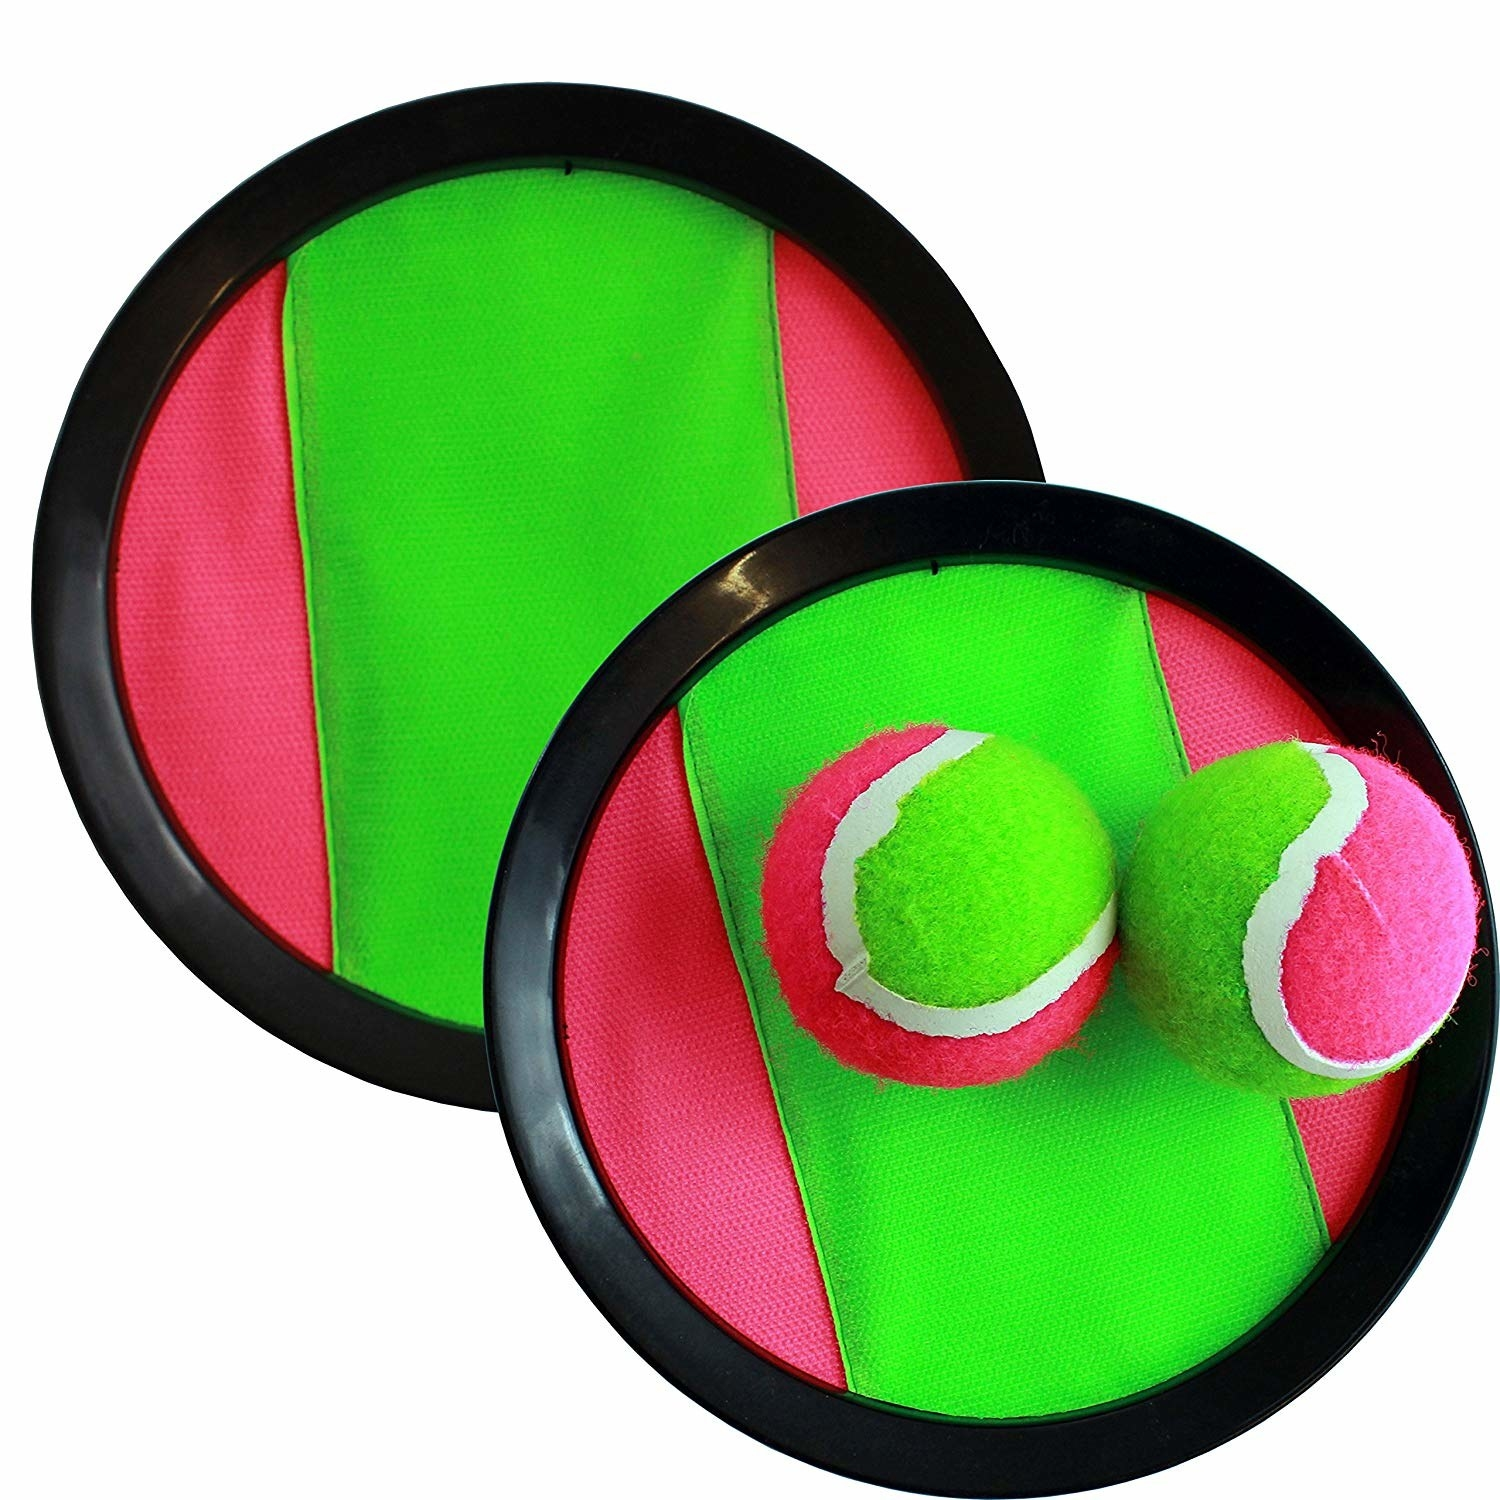 A set of neon pink and green Magic Balls.